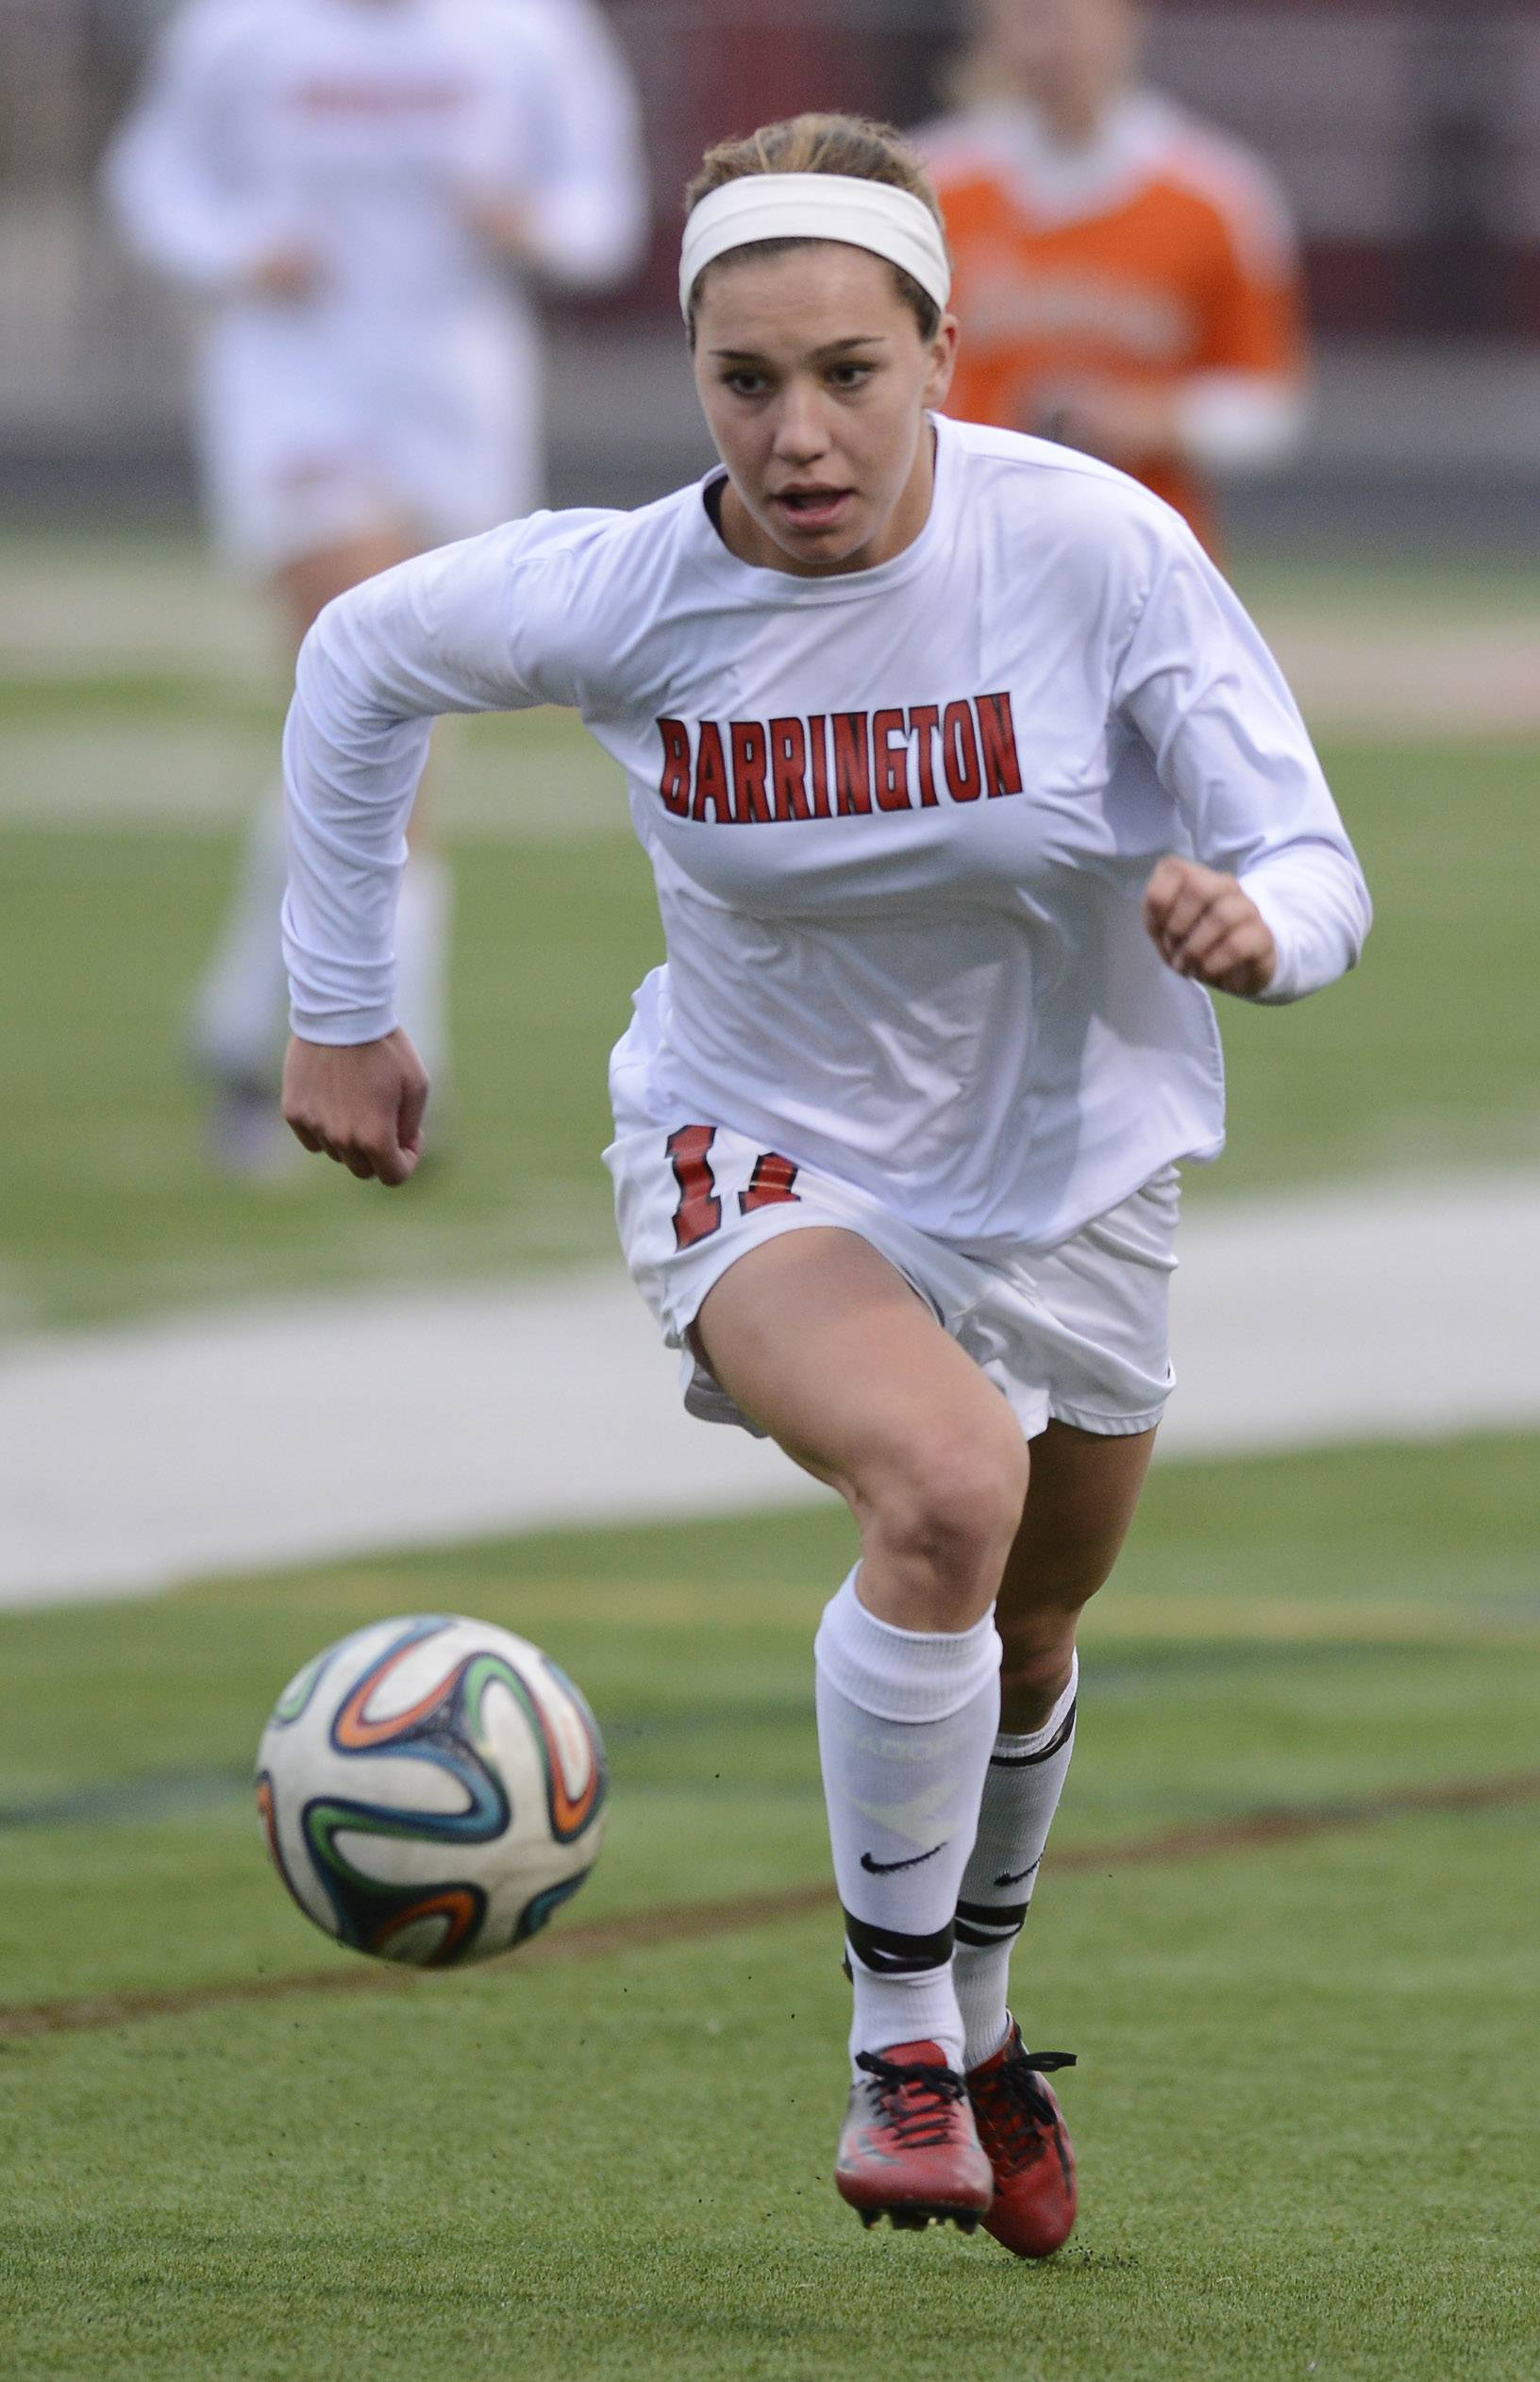 Barrington's Jenna Szczesny advances the ball upfield during the Mid-Suburban League championship game. She has been named Gatorade's girls soccer player of the year in Illinois.